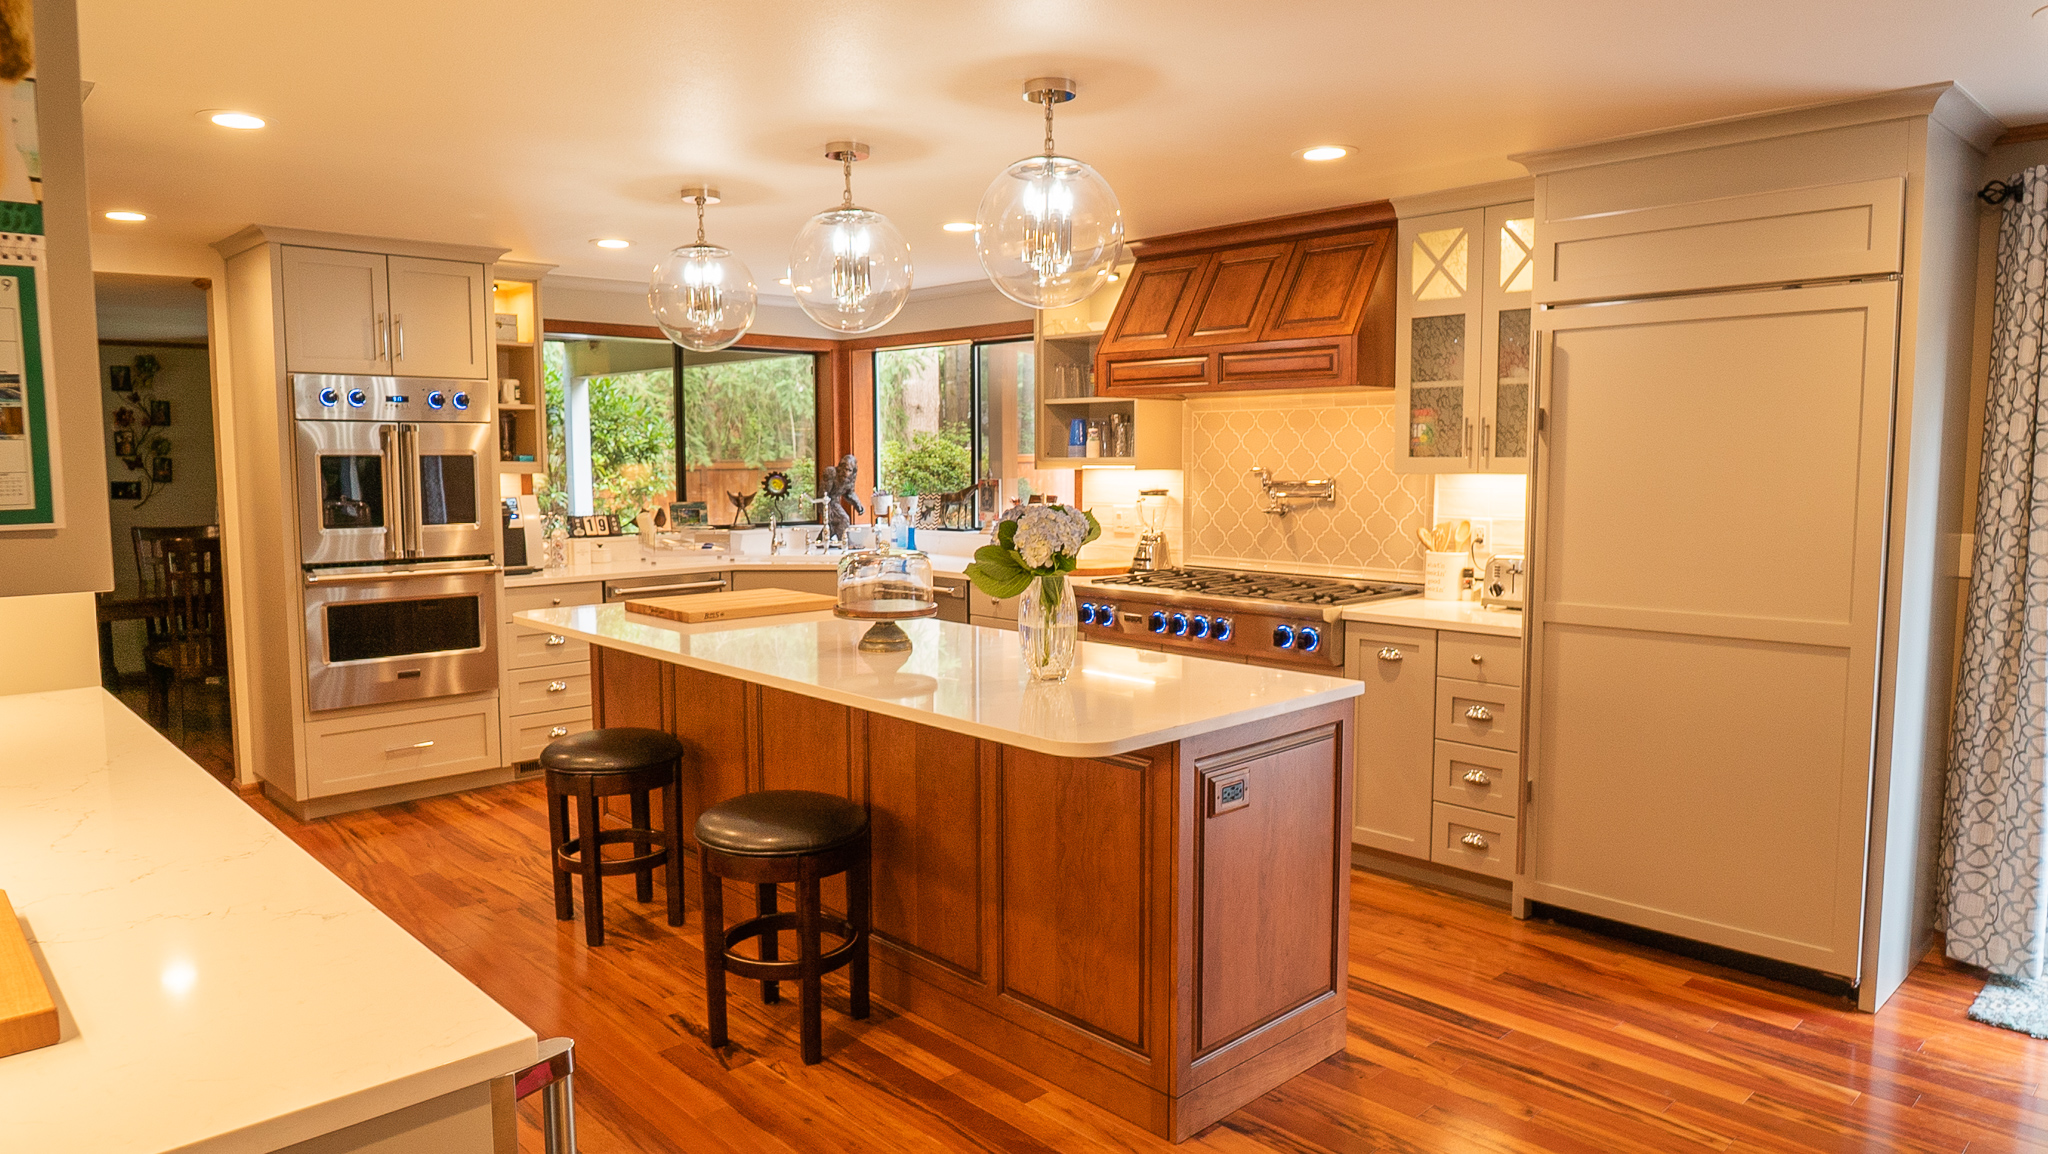 Choose Professional Kitchen and Bathroom Remodeling services based out of Ravensdale, Covington, Black Diamond, Maple Valley & Kent, WA.